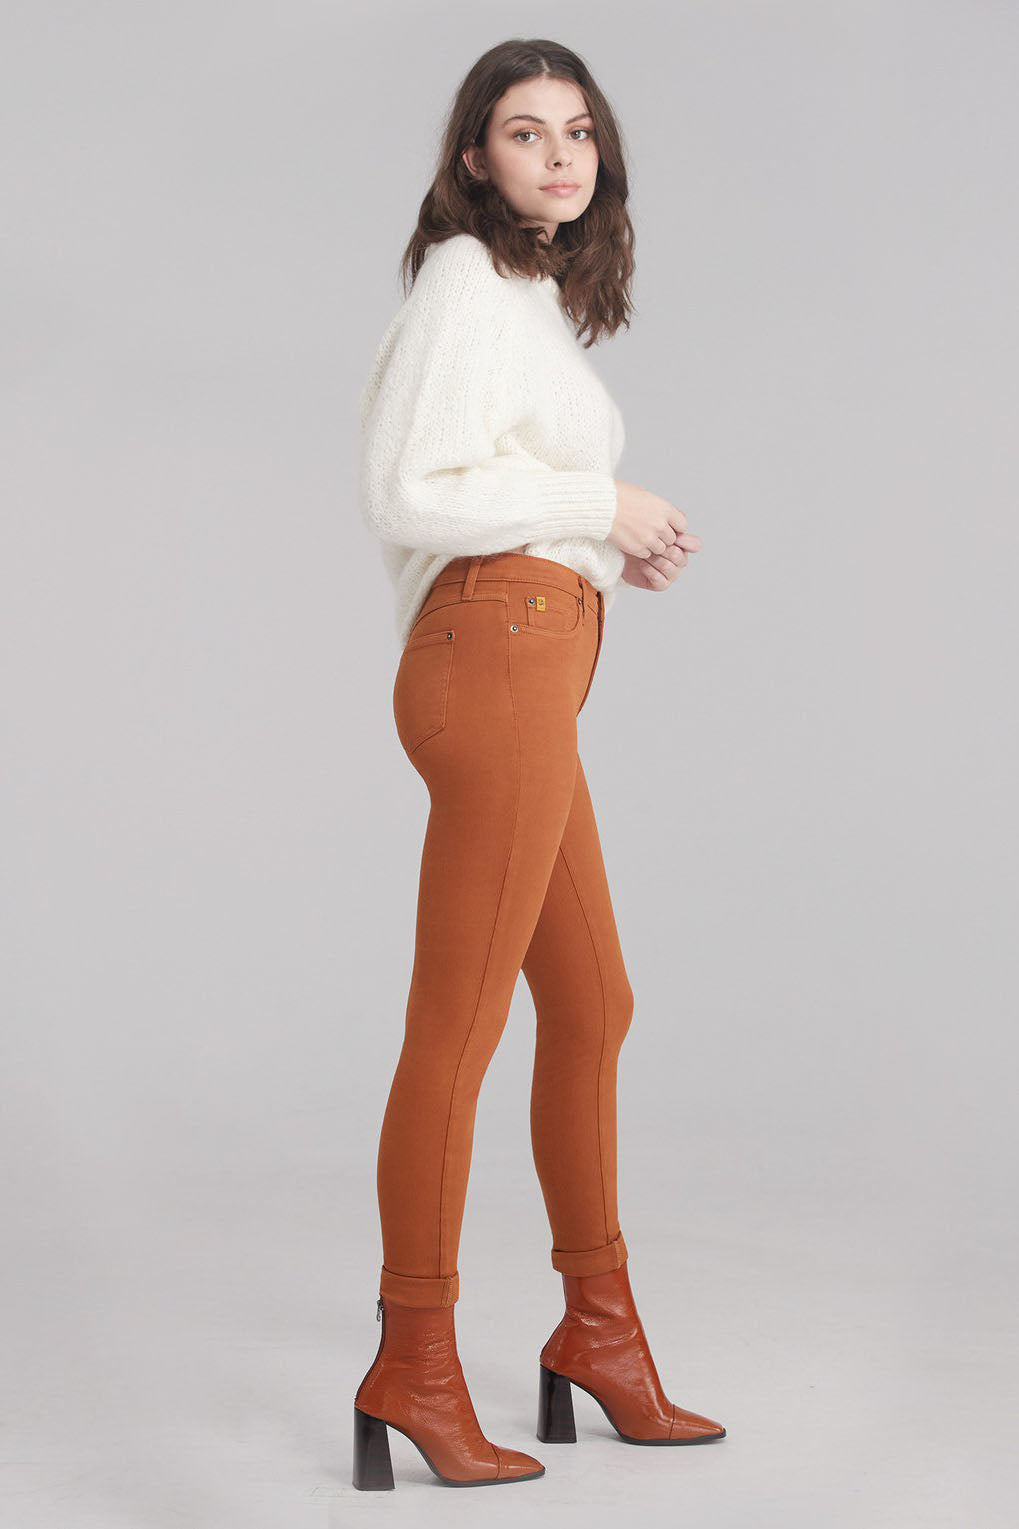 Second Denim Yoga Jeans Classic Rise Skinny, Glazed Ginger, sizes 24-34, made in Canada, style 1711-R30 side View